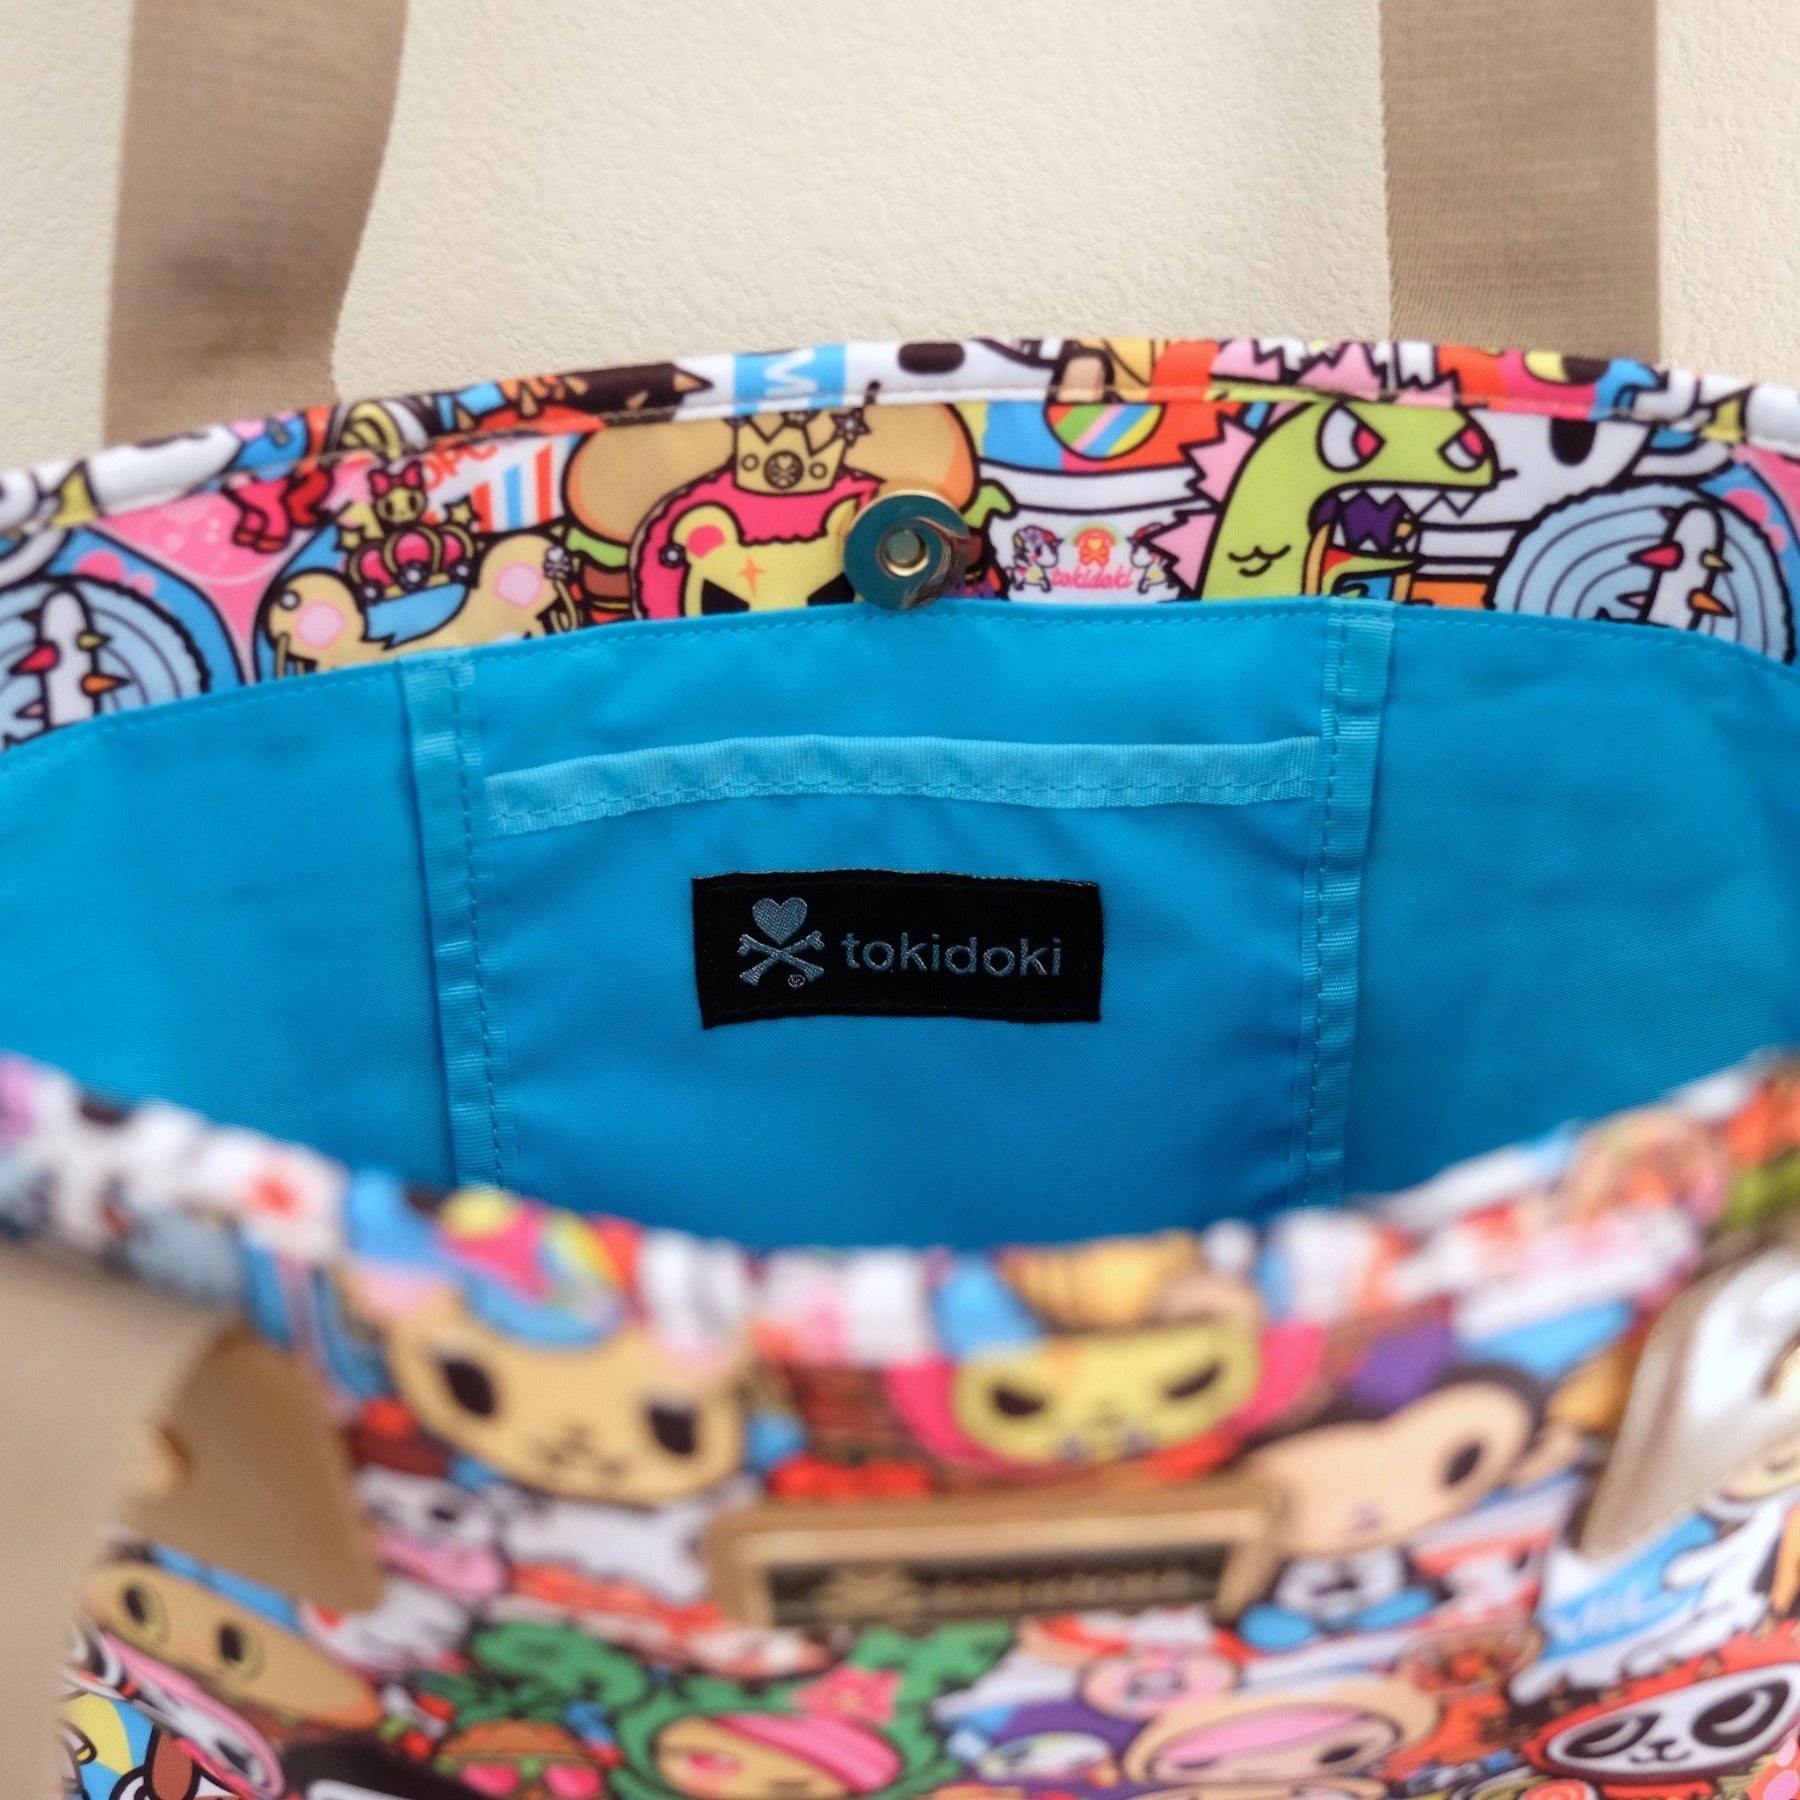 tokidoki food collection shopper tote interior